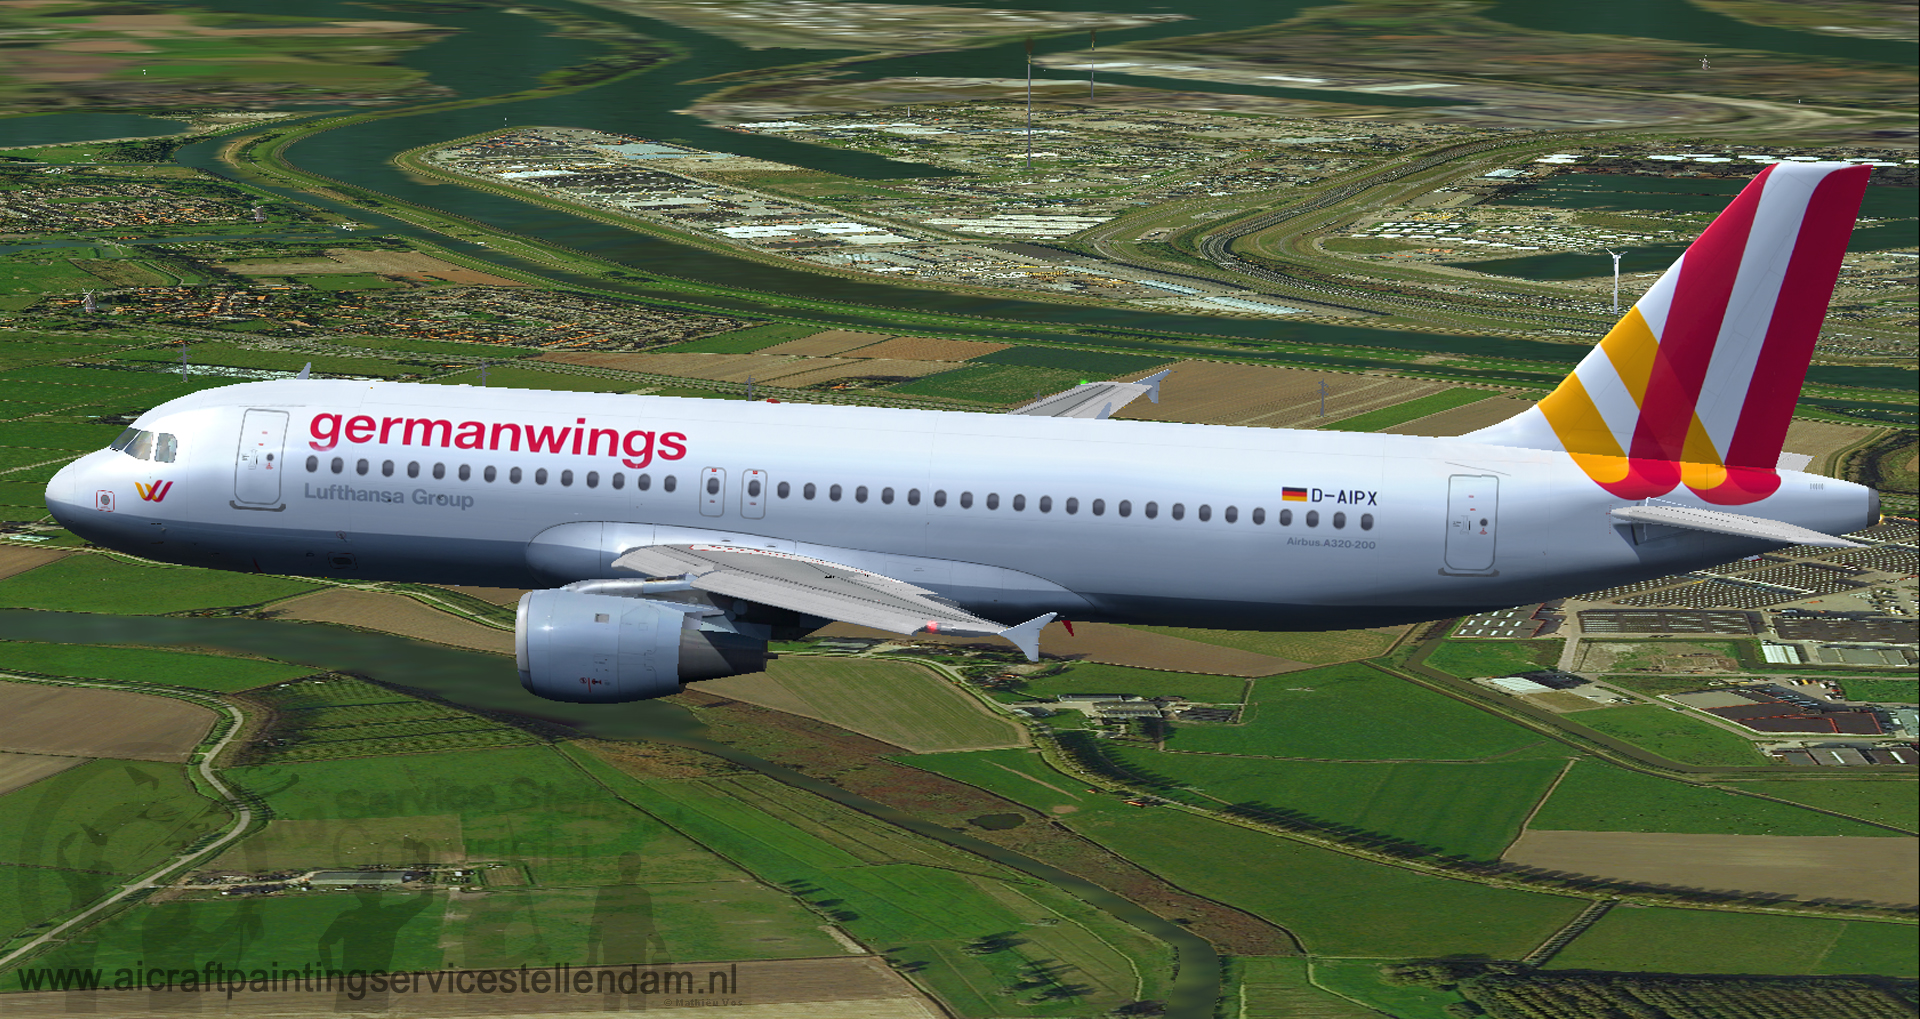 ProjectAirbusA320-200Germanwings_D-AIPX5